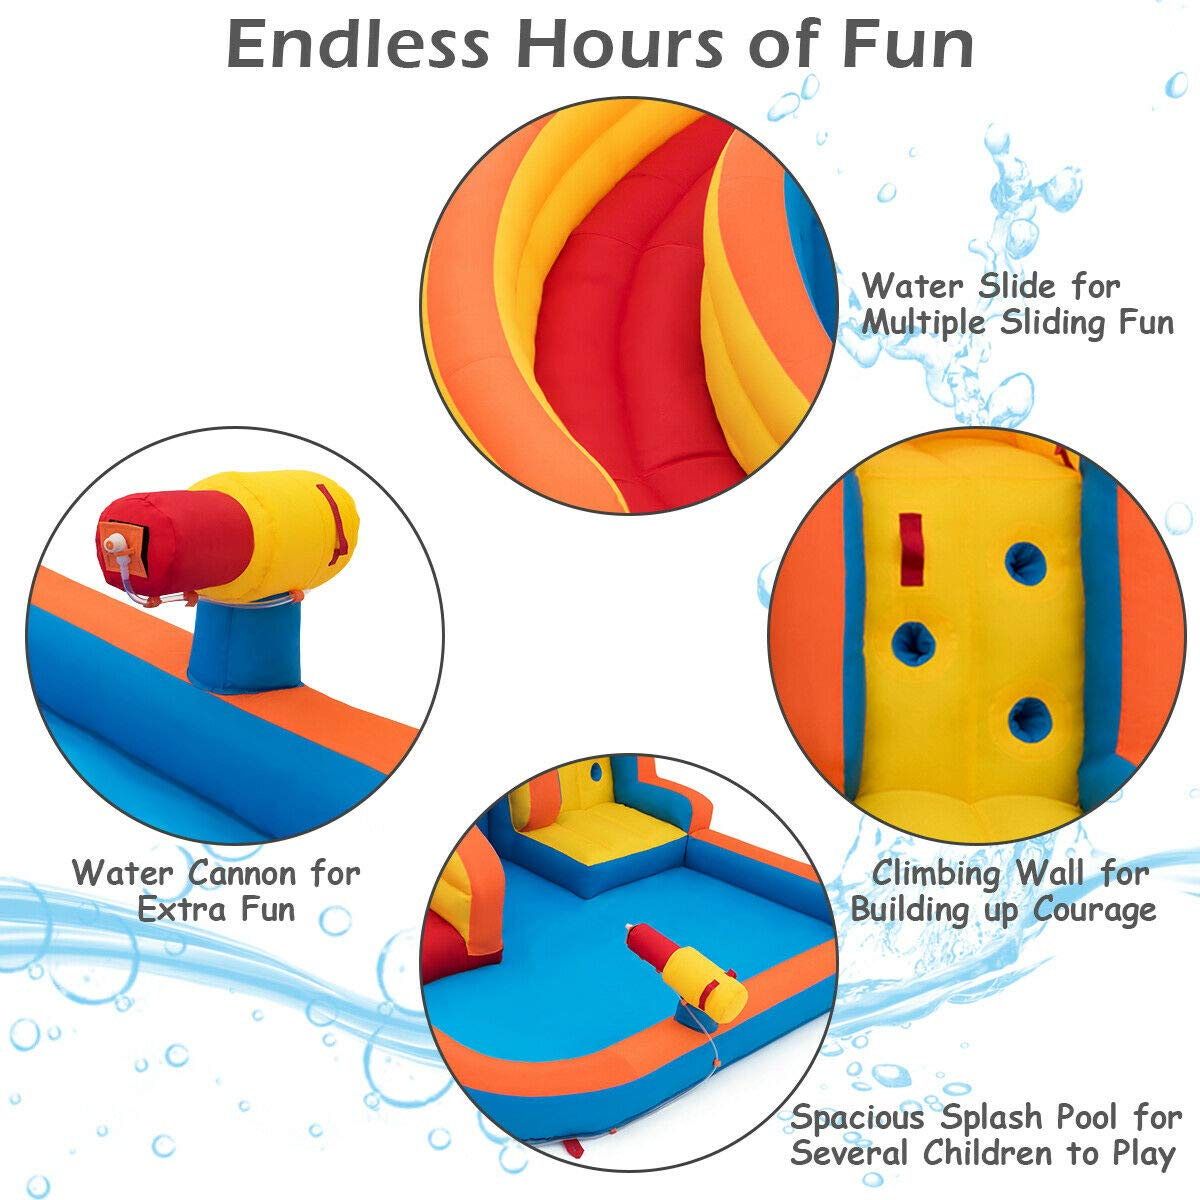 Heize Best Price Orange Inflatable Splash Water Bouncer Slide Bounce House w/ Climbing Wall & Water Hose Splash Pool(U.S. Stock) by Heize Best Price (Image #9)